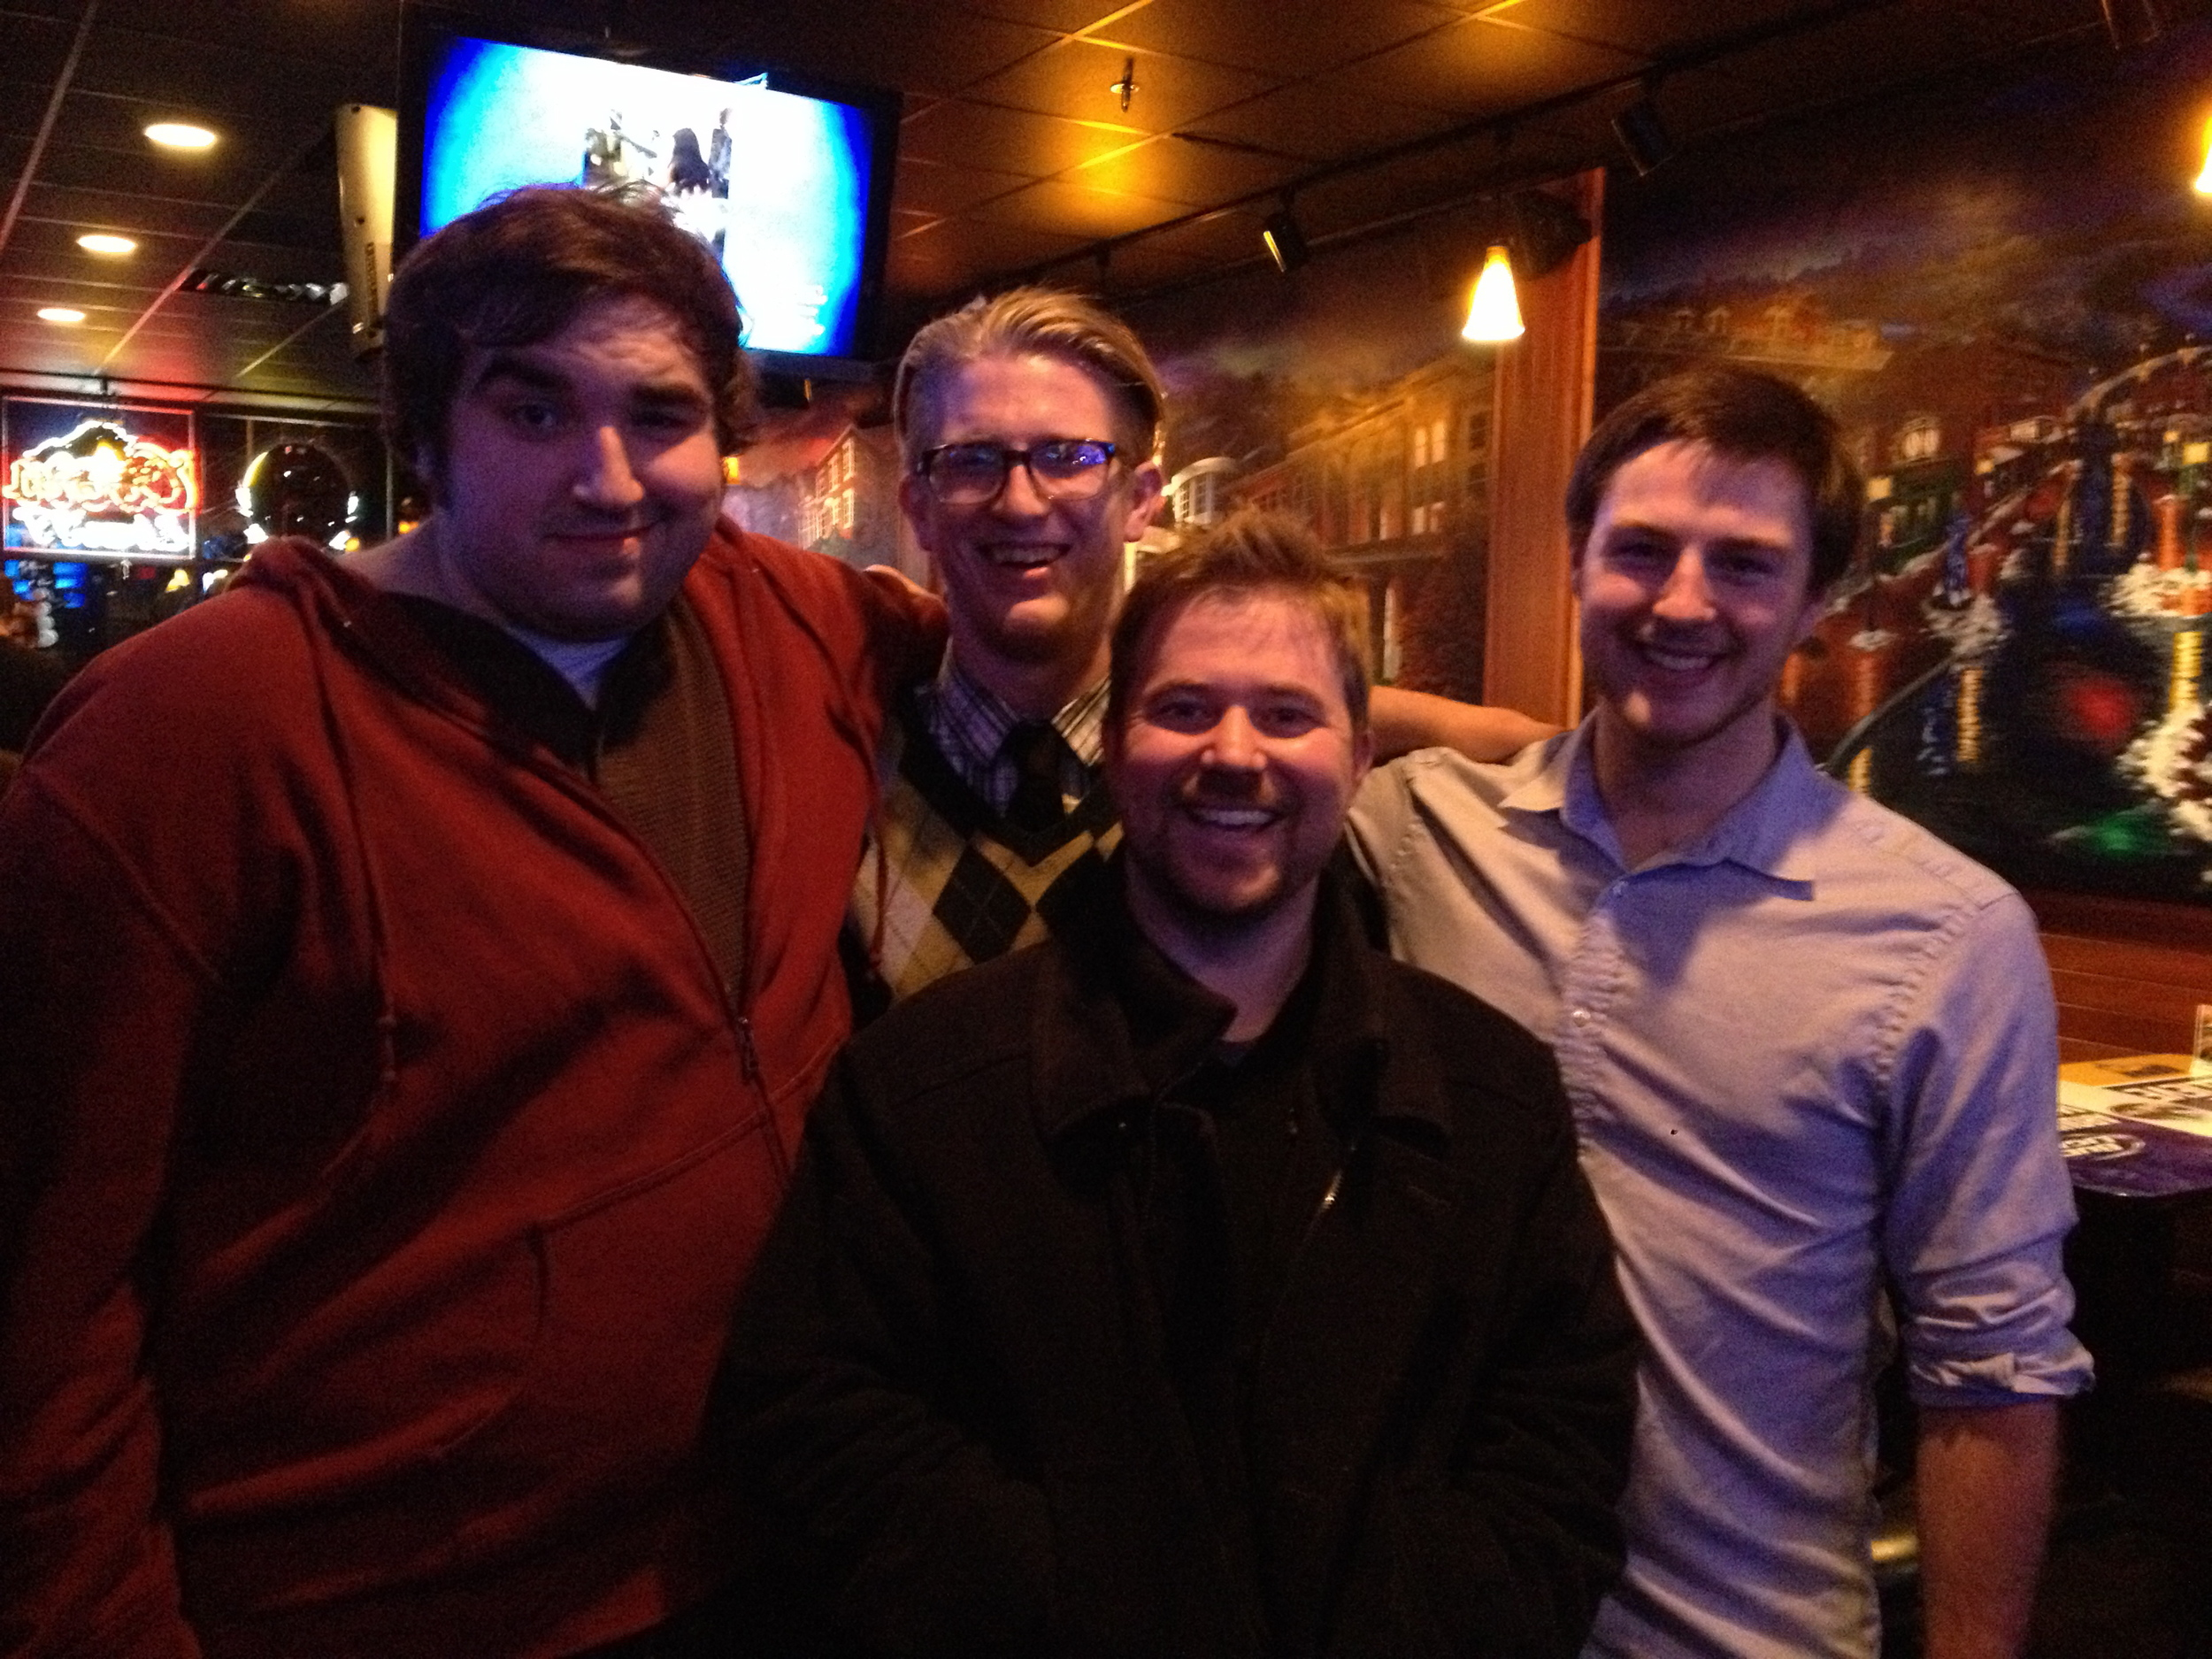 Brothers in Song: Drew Stevens (left), Ben Schmidt, (center), & Dylan Schulte (right) with Dr. Wiles (short).